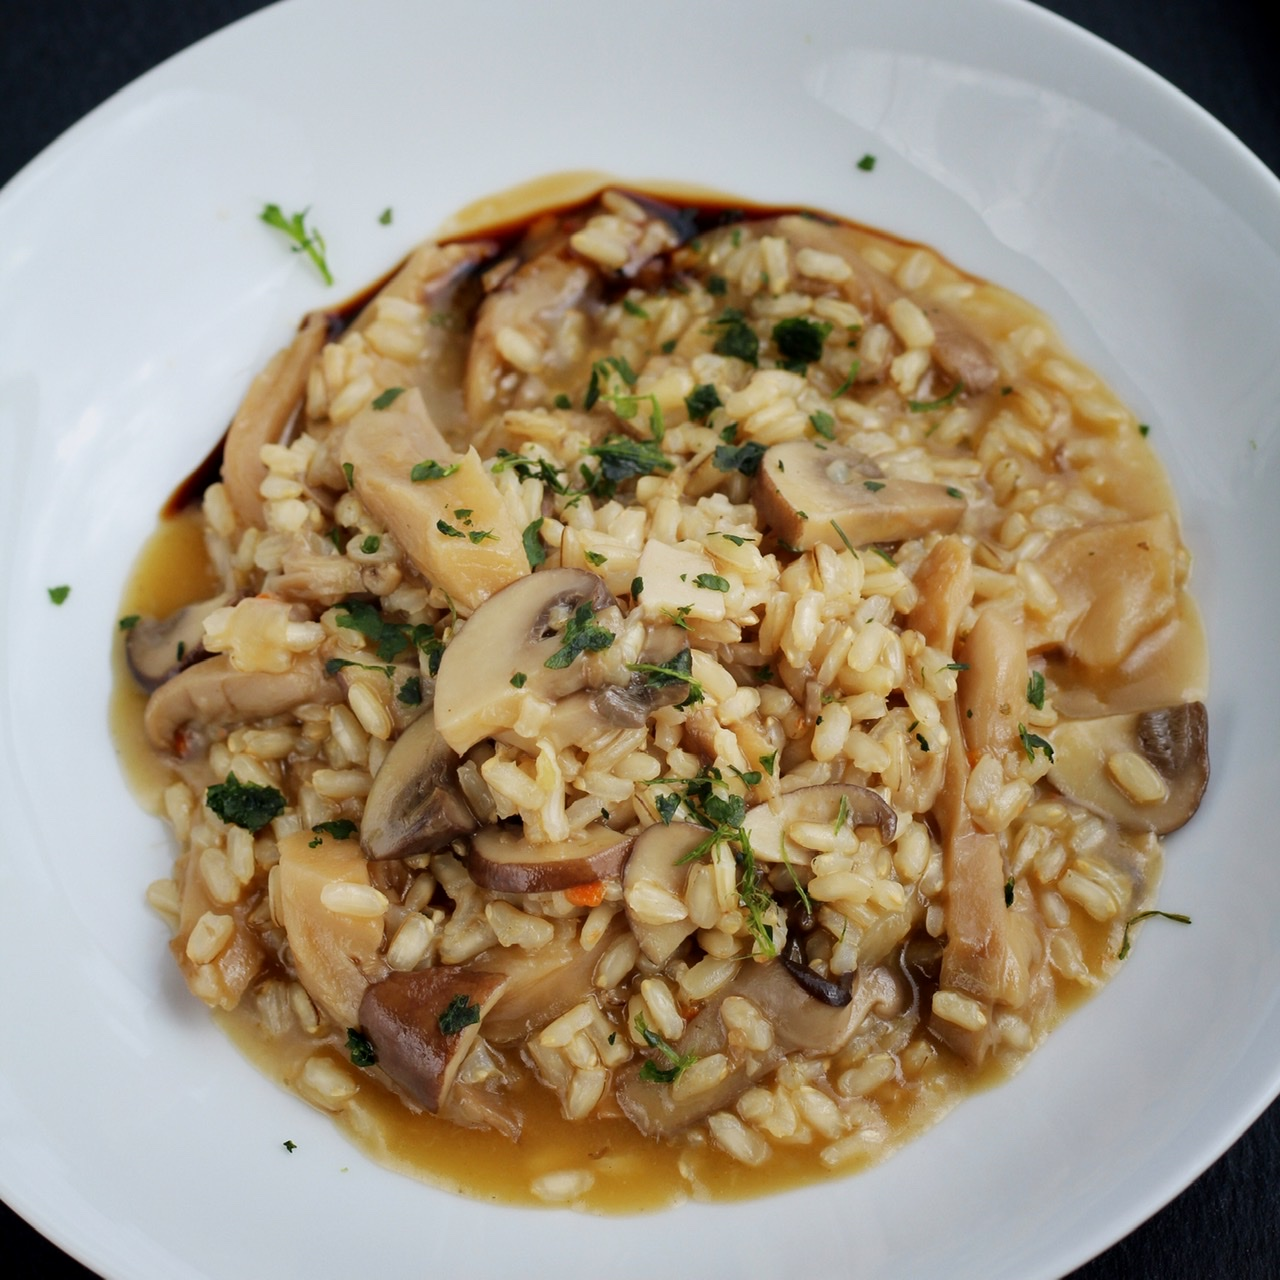 Instant Pot® Brown Rice and Mushroom Risotto (Vegan and Gluten-Free)